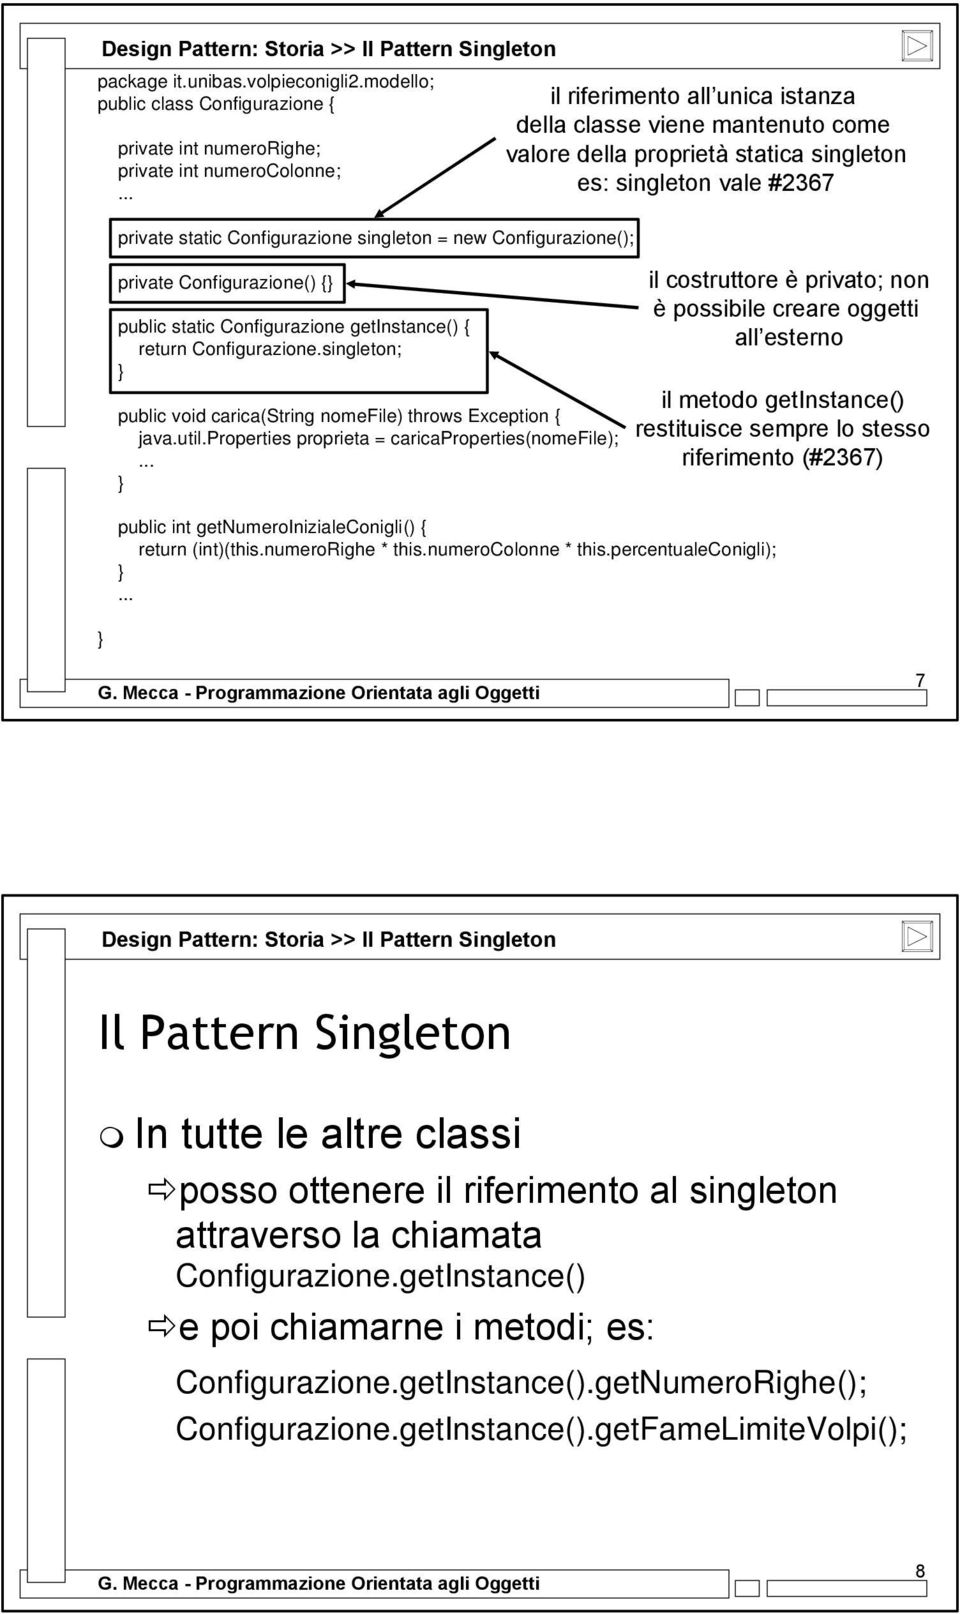 singleton; public void carica(string nomefile) throws Exception { java.util.properties proprieta = caricaproperties(nomefile);.